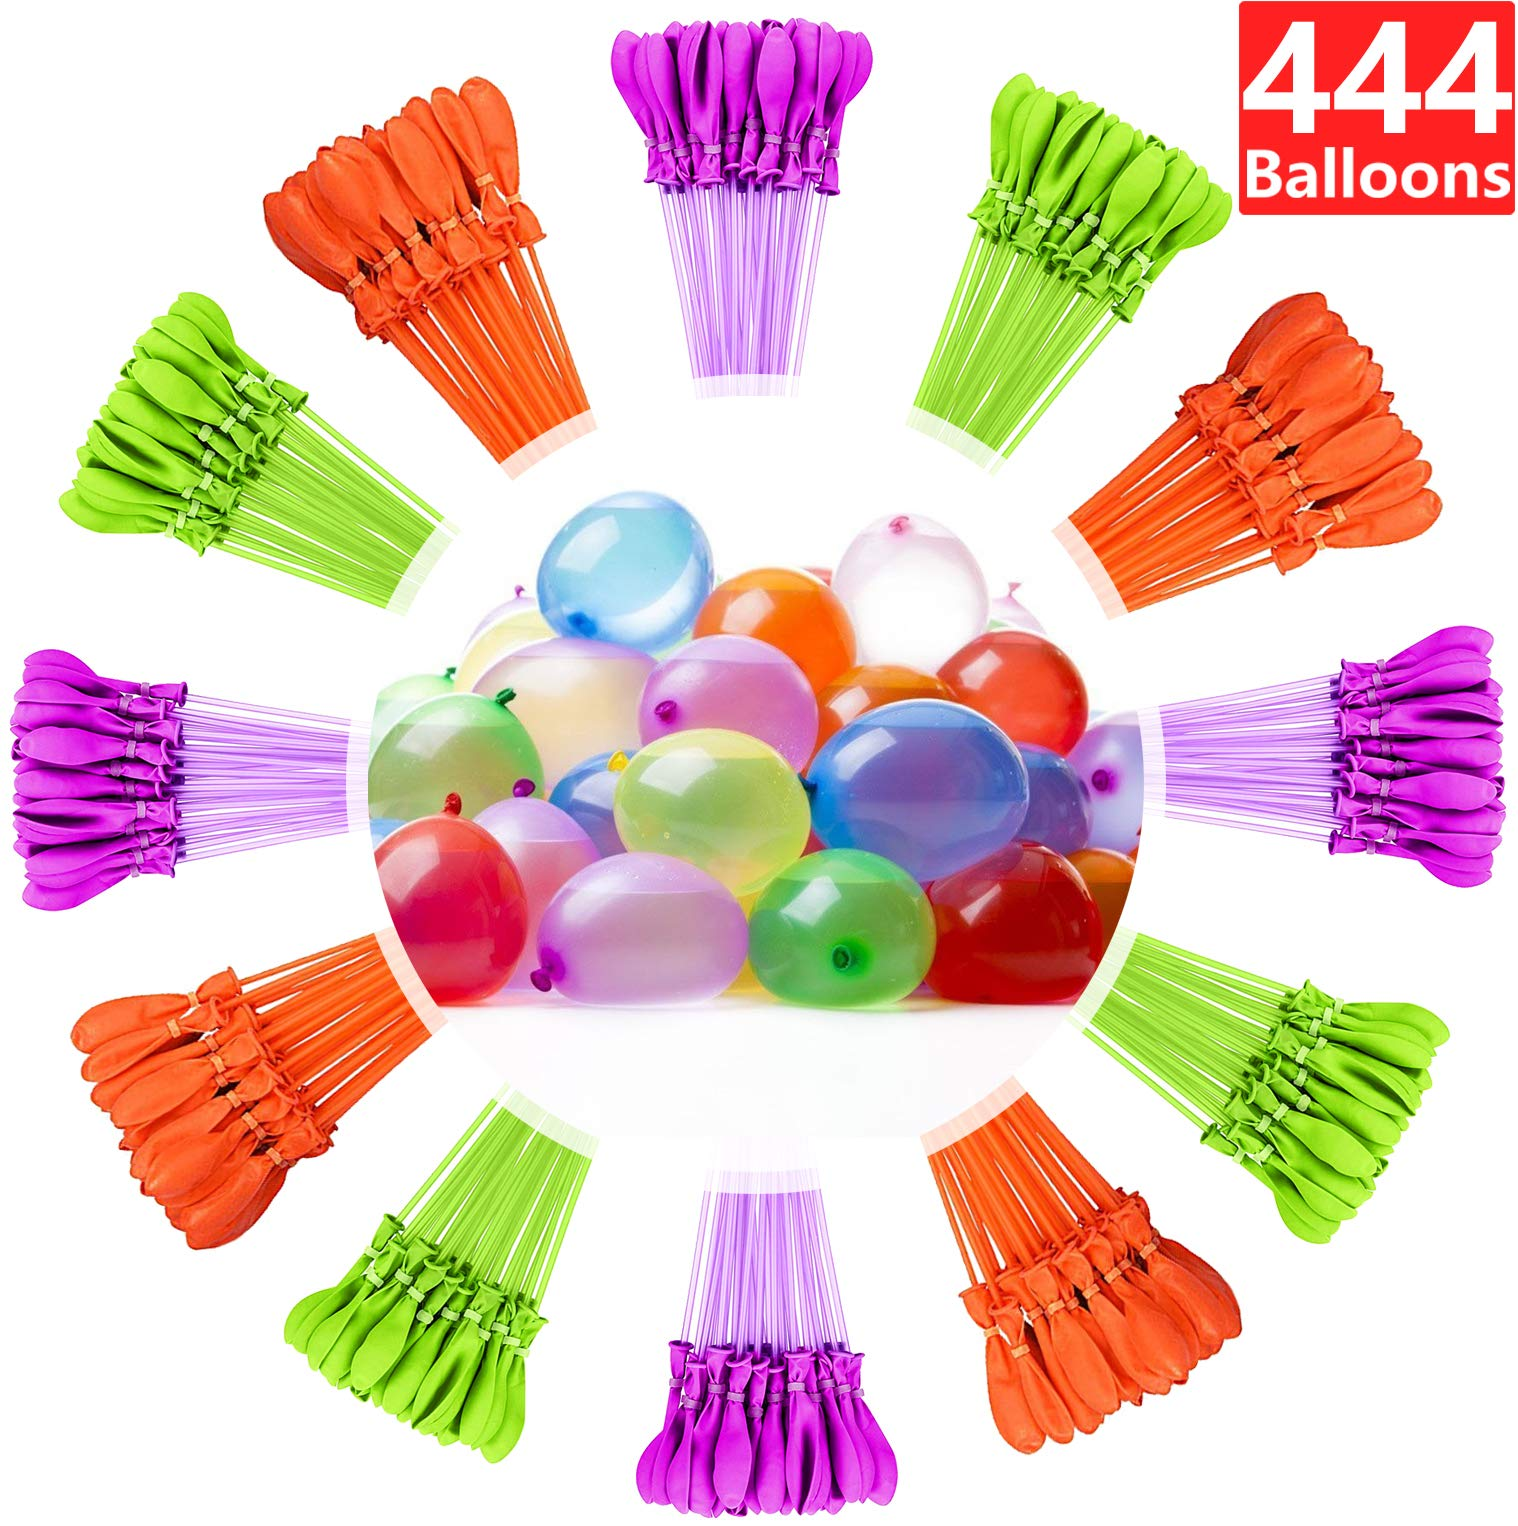 Water Balloons for Kids Girls Boys Balloons Set Party Games Quick Fill Water Balloons 444 Bunches Swimming Pool Outdoor Summer Fun L13 by Magic balloons